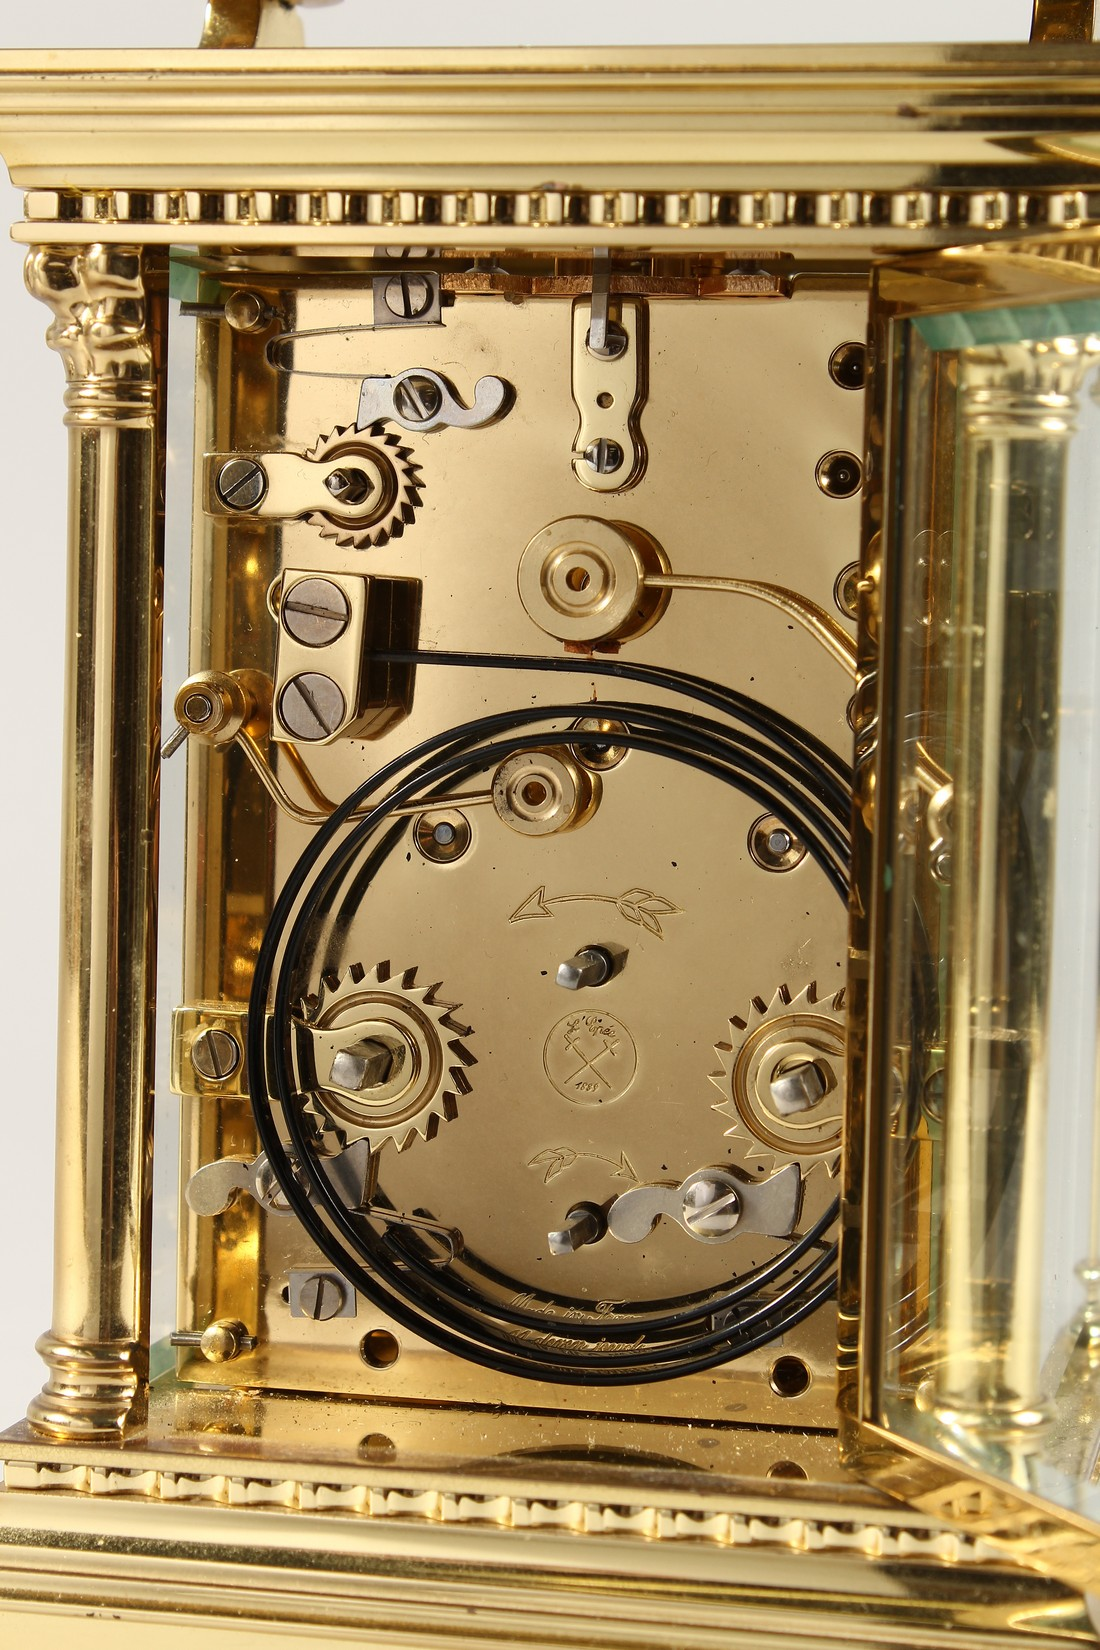 A GOOD ASPREYS BRASS CARRIAGE CLOCK with alarm. 6ins high. - Image 6 of 7